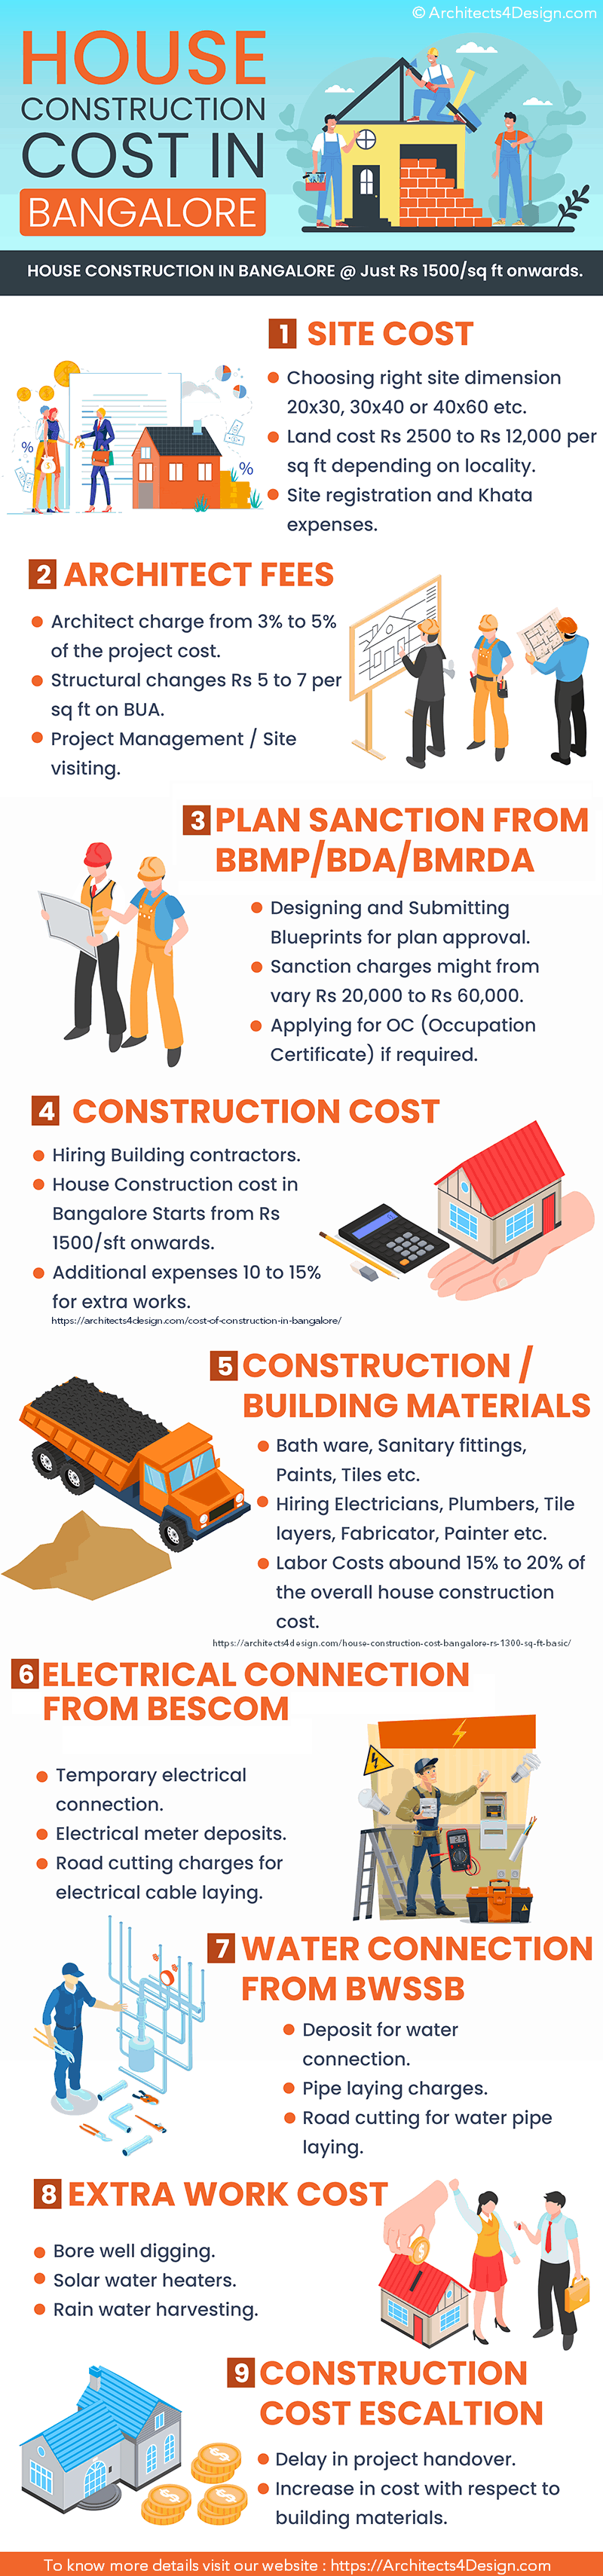 House construction in Bangalore house construction cost